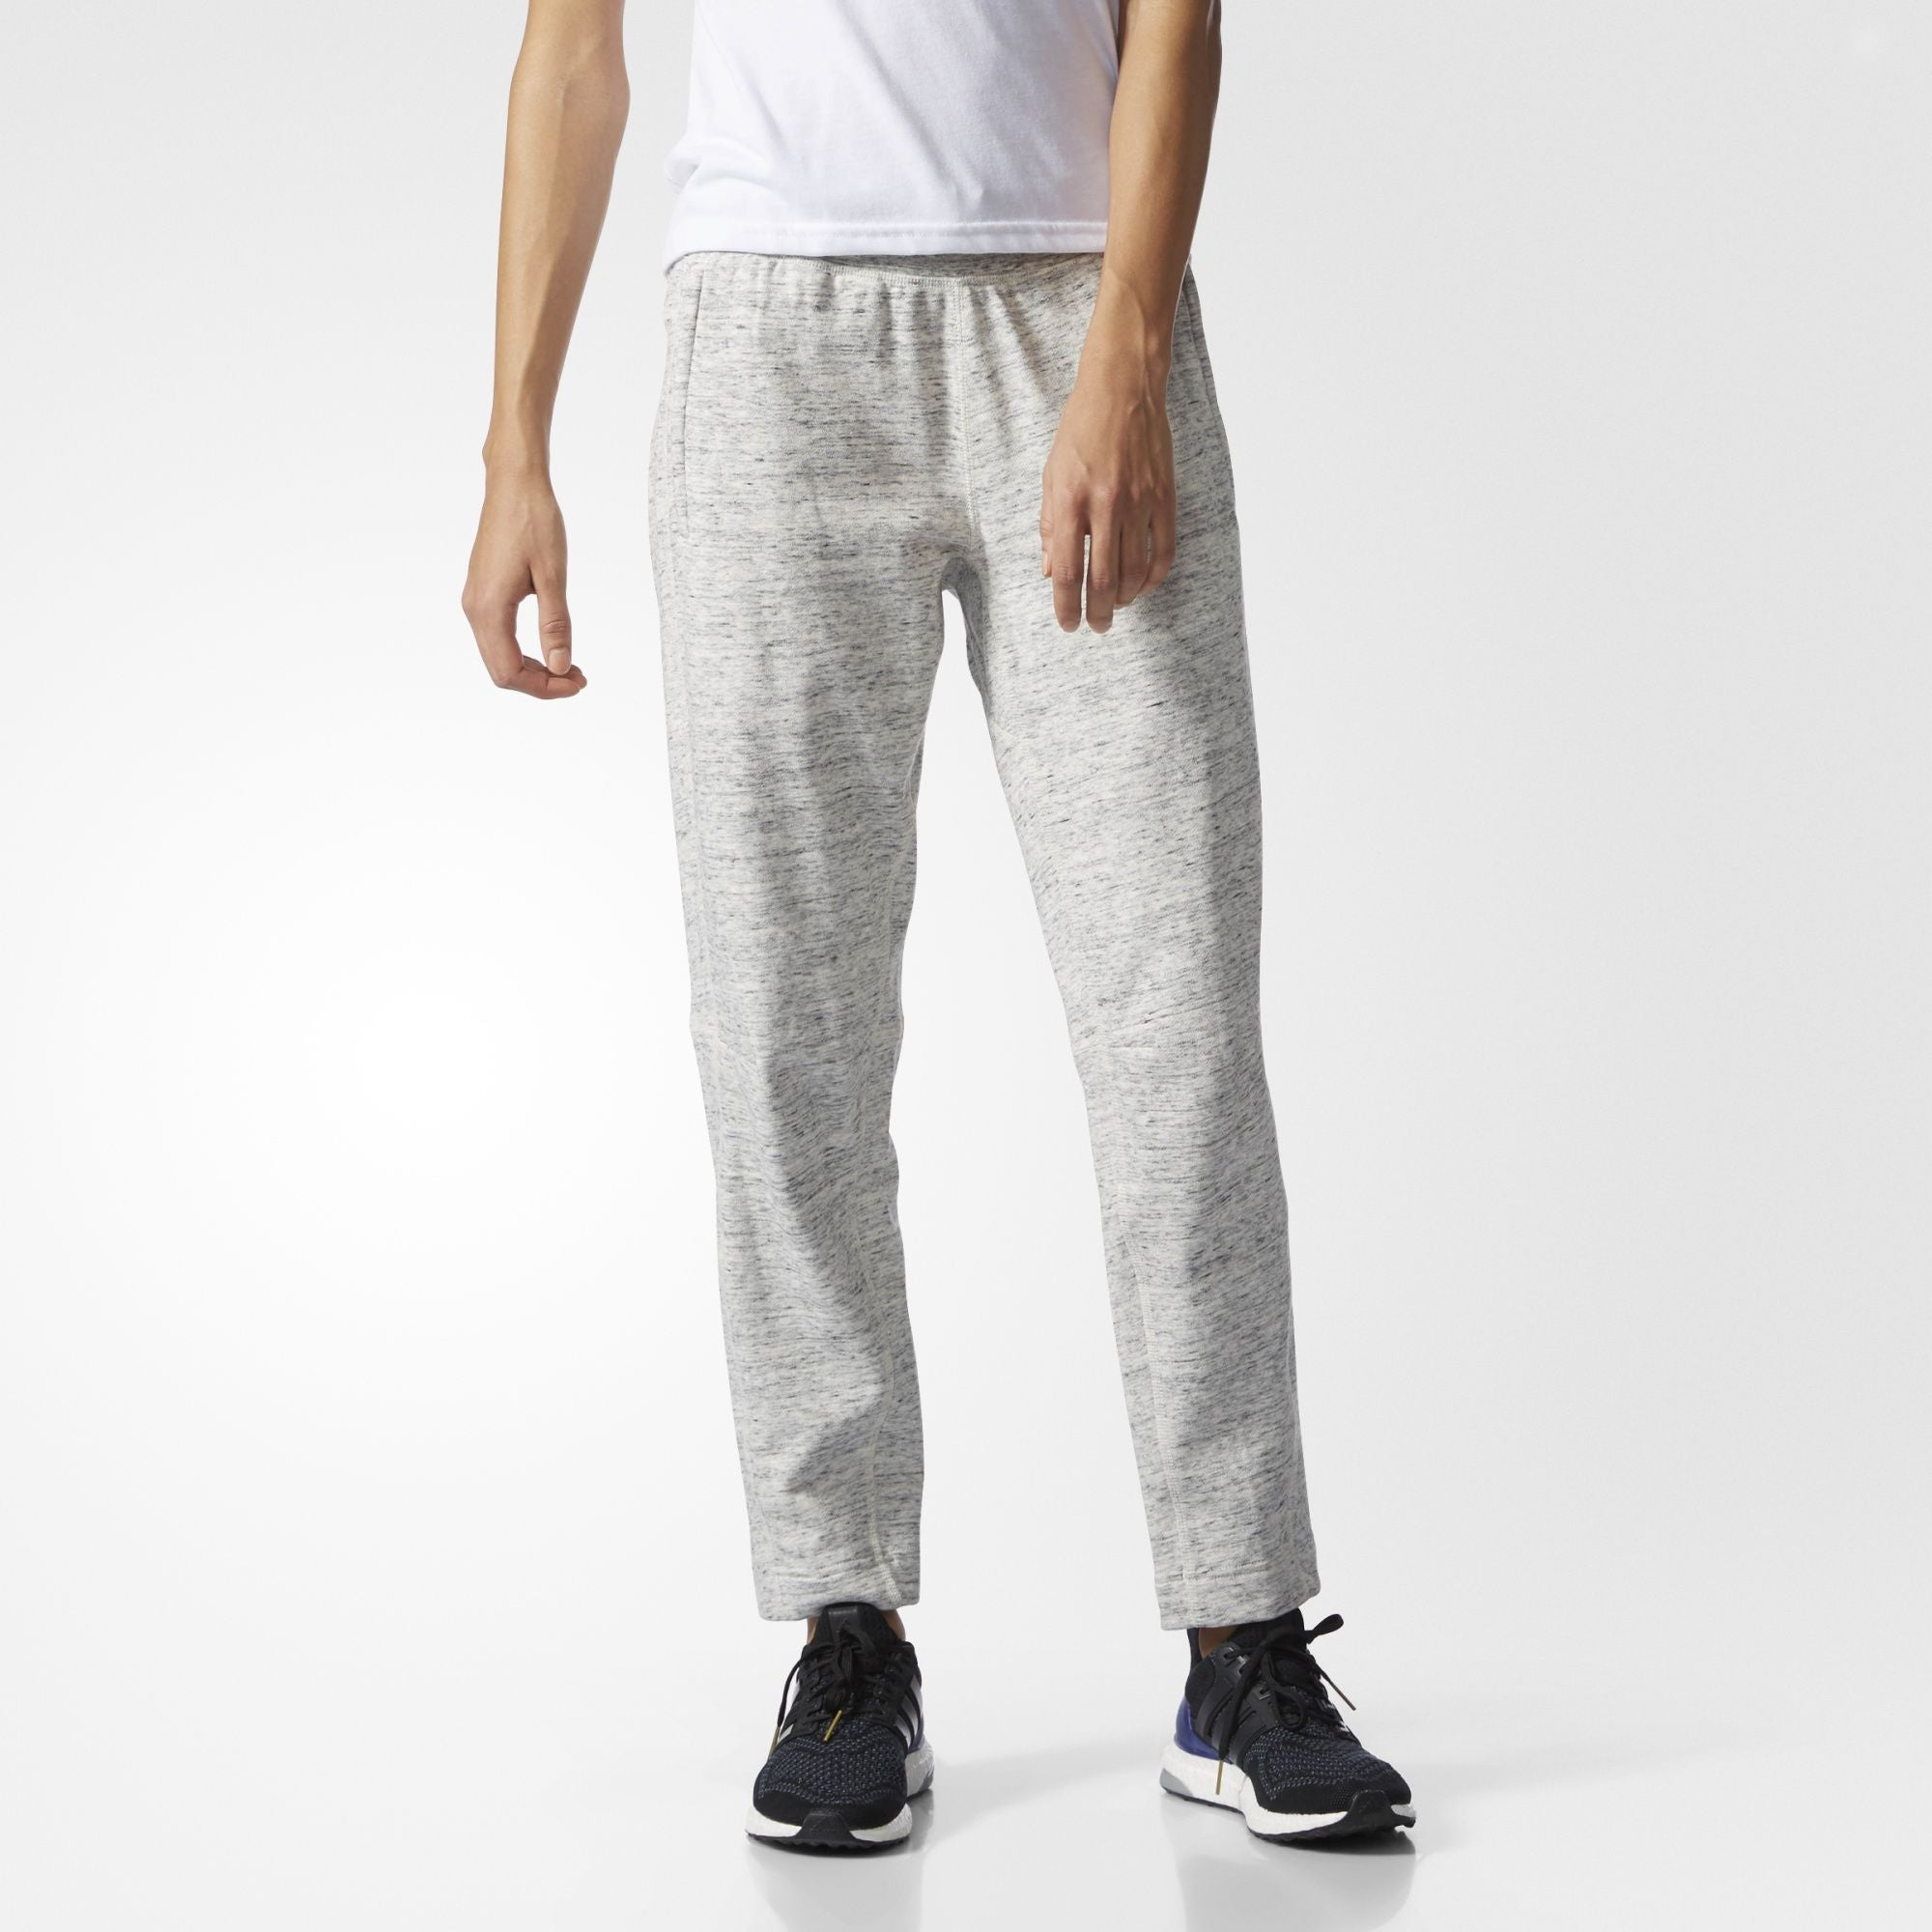 52482e83d ADIDAS ATHLETICS X REIGNING CHAMP FRENCH TERRY PANTS WOMEN S - GREY WHITE